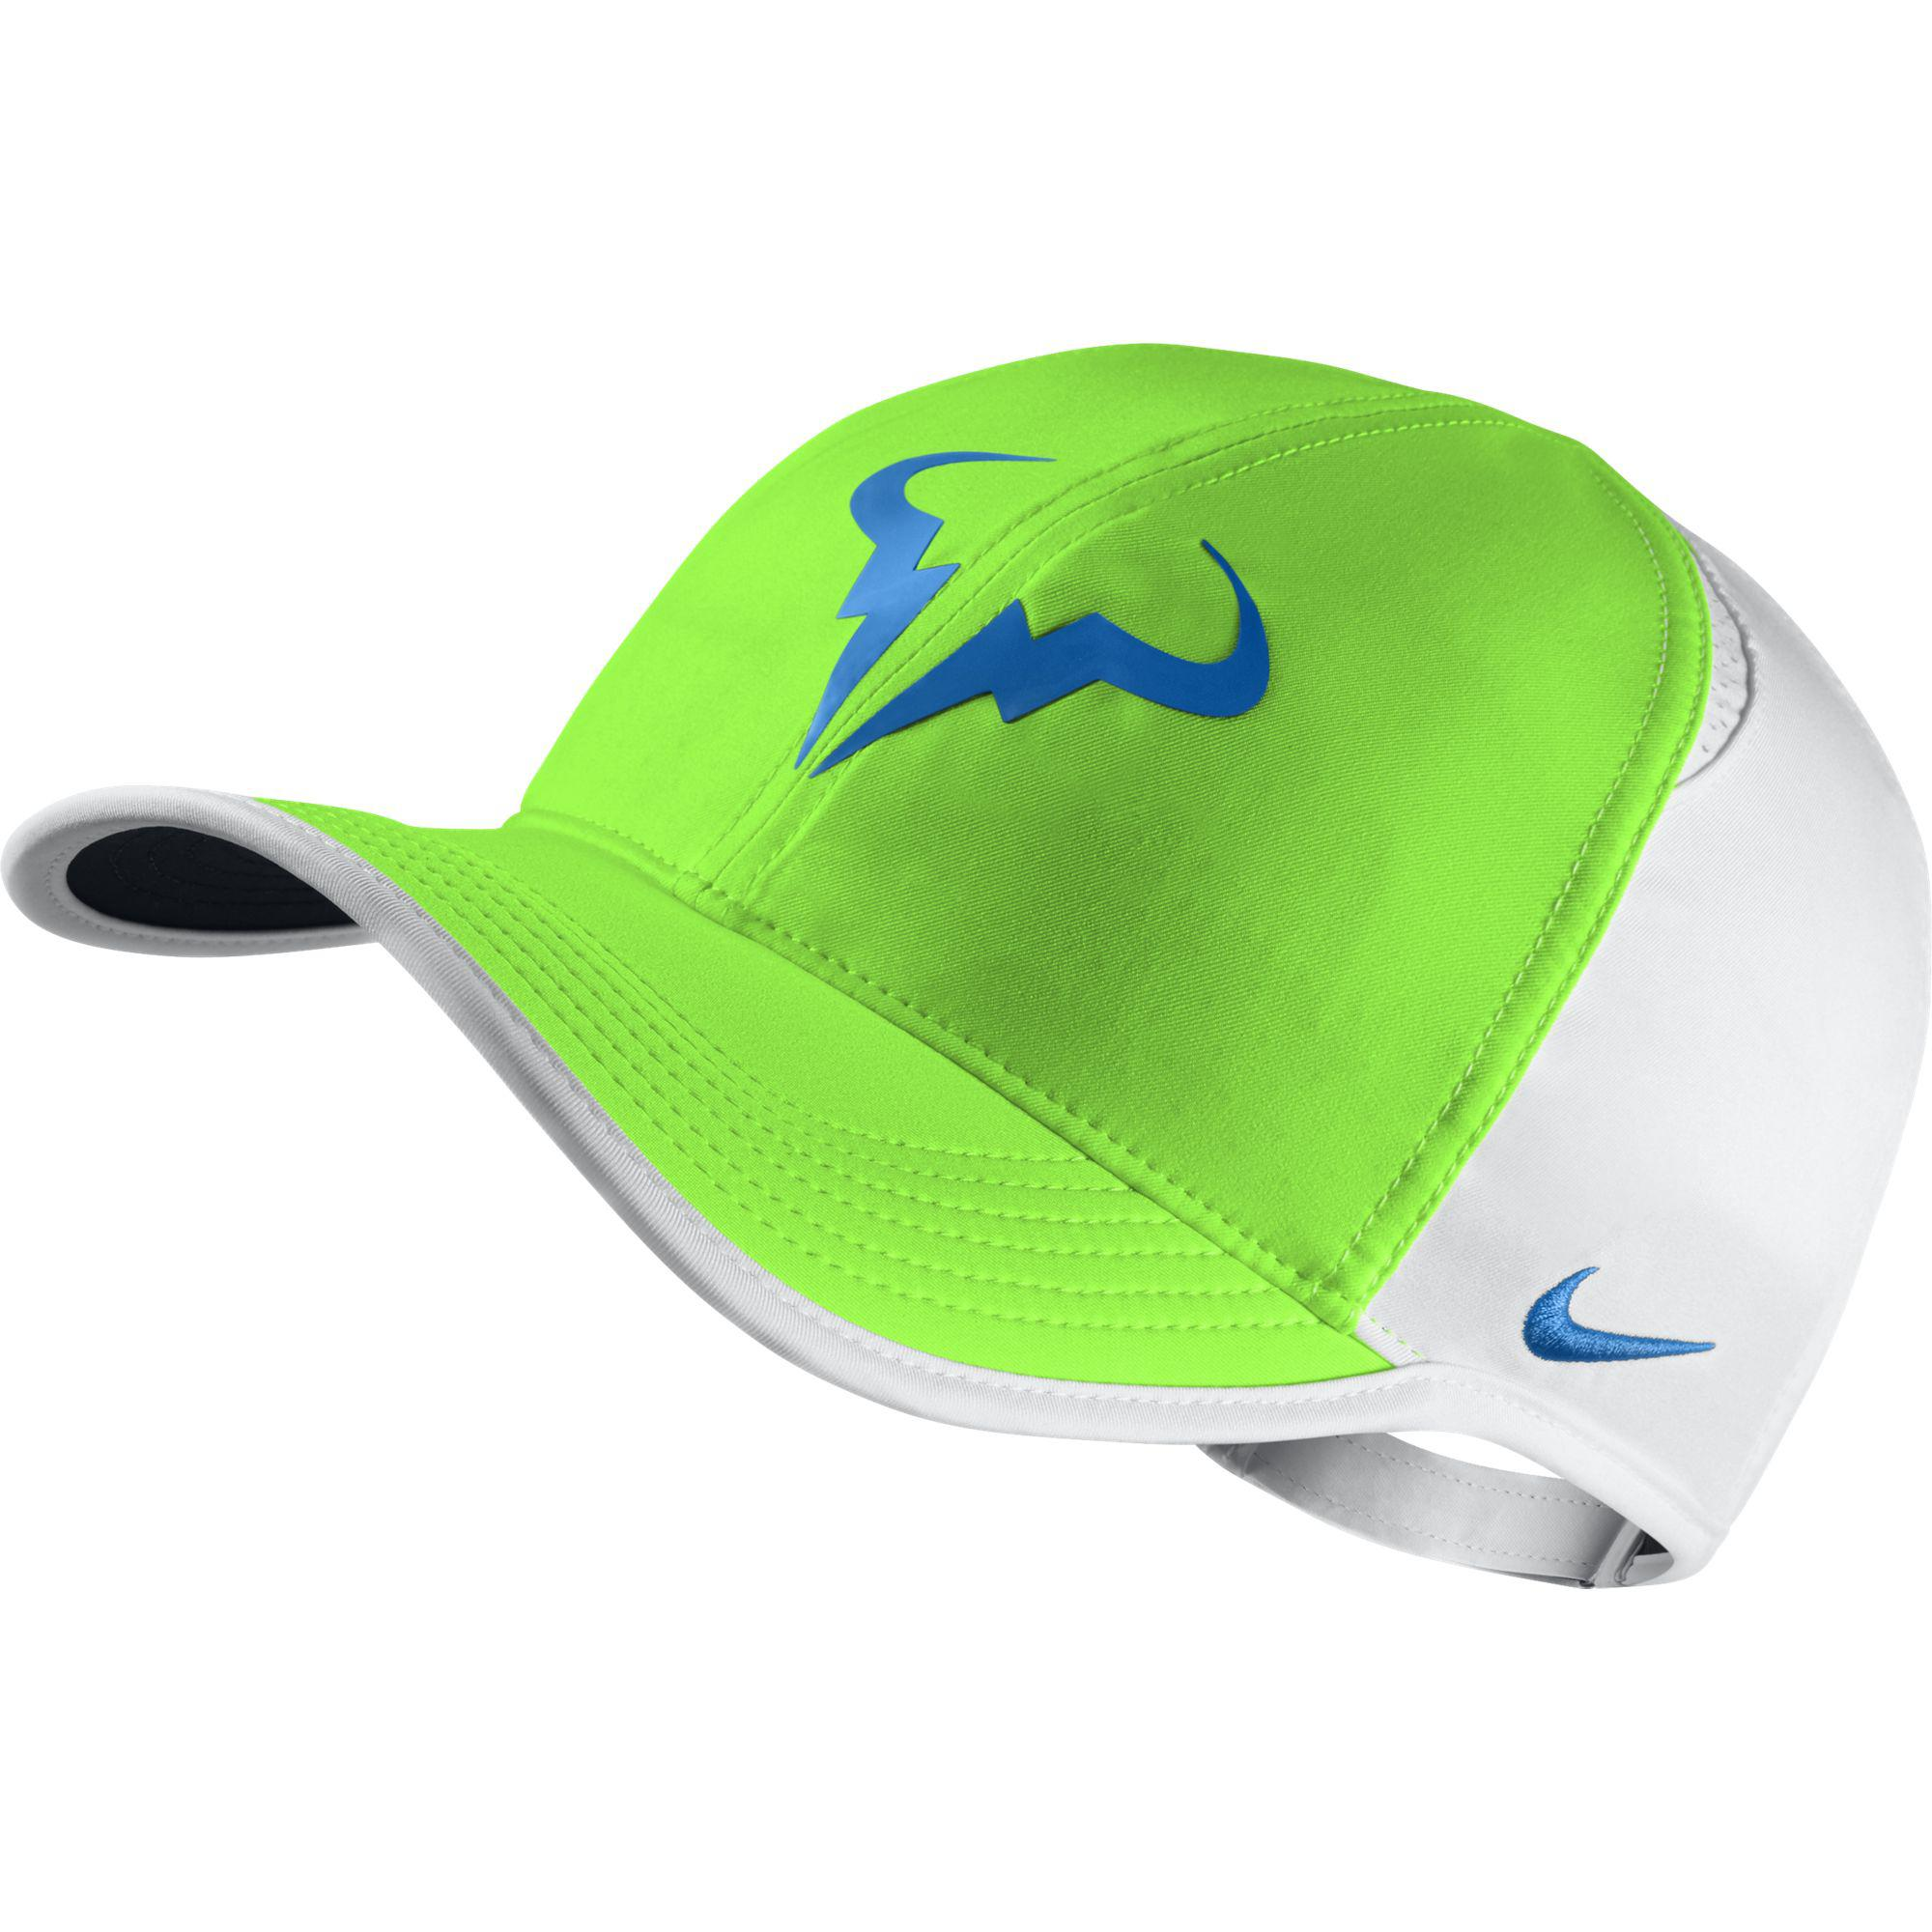 6dc118bef9f62 ... coupon code for nike rafa premier feather light adjustable cap green  pulse white d88fa d187a